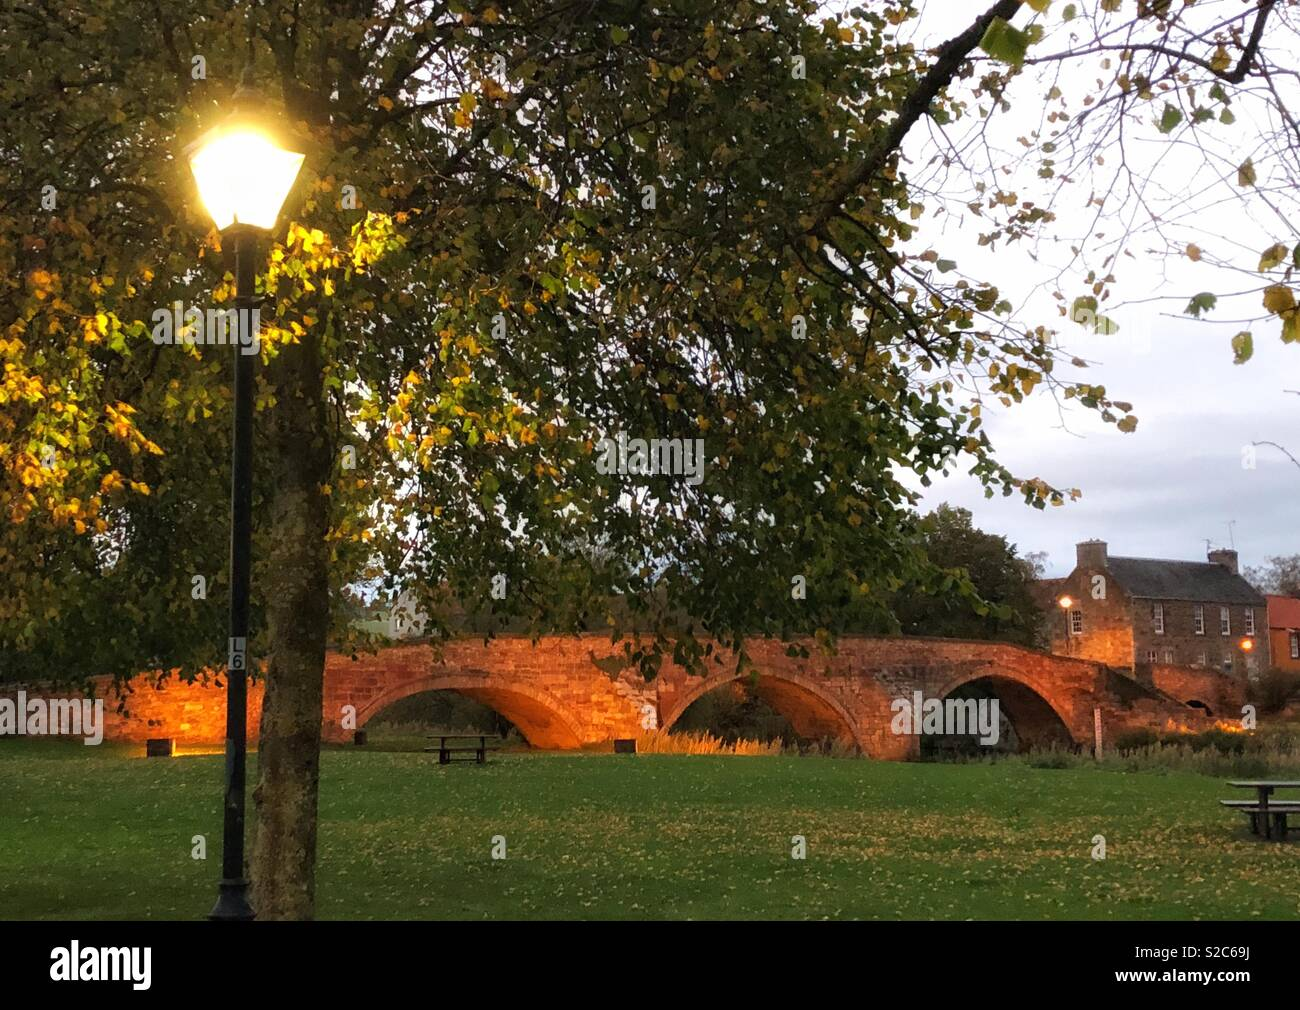 Historic arched Nungate Bridge lit up at twilight, Haddington, East Lothian, Scotland, UK - Stock Image